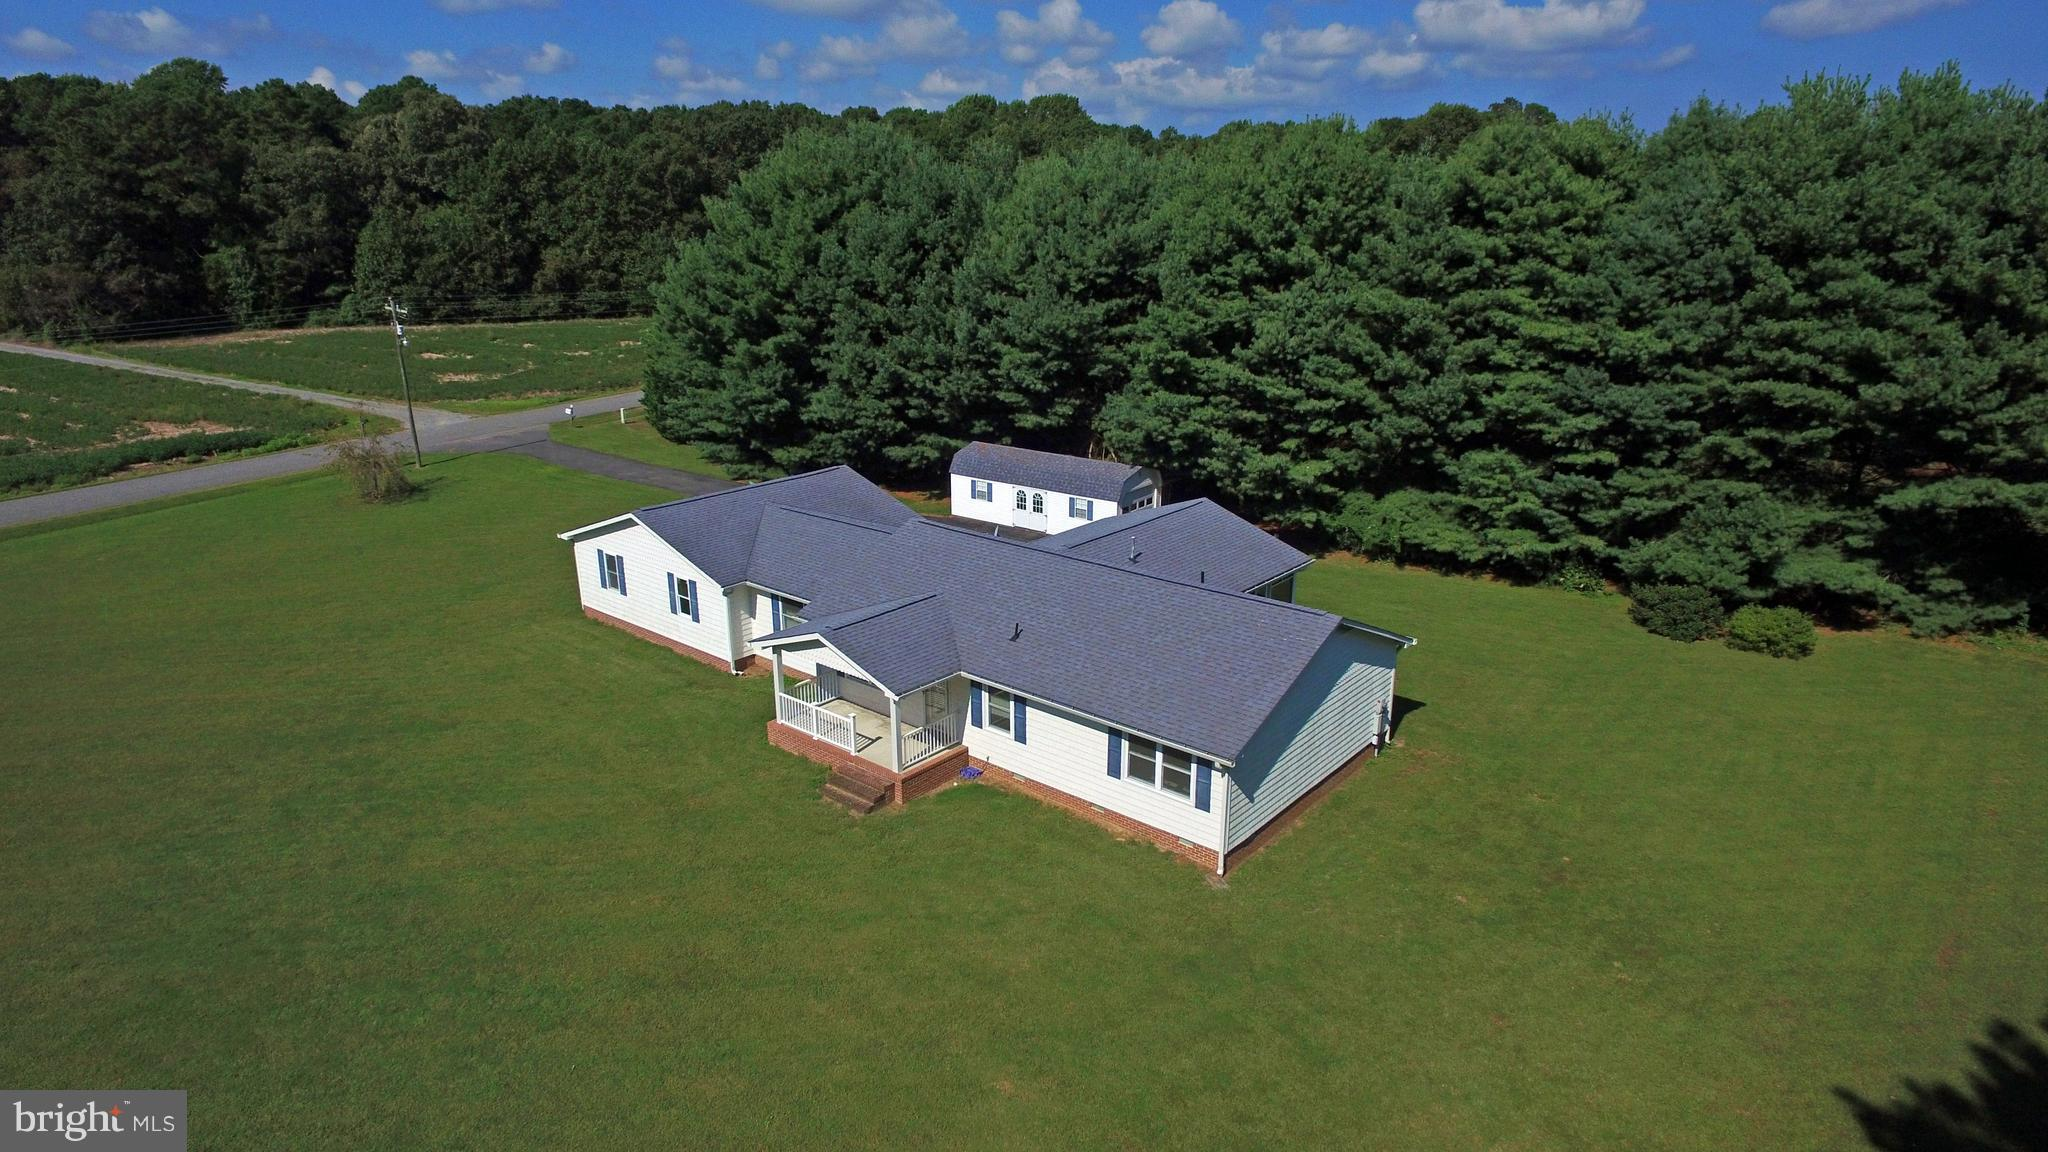 508 OYSTER POINT DRIVE, REEDVILLE, VA 22539